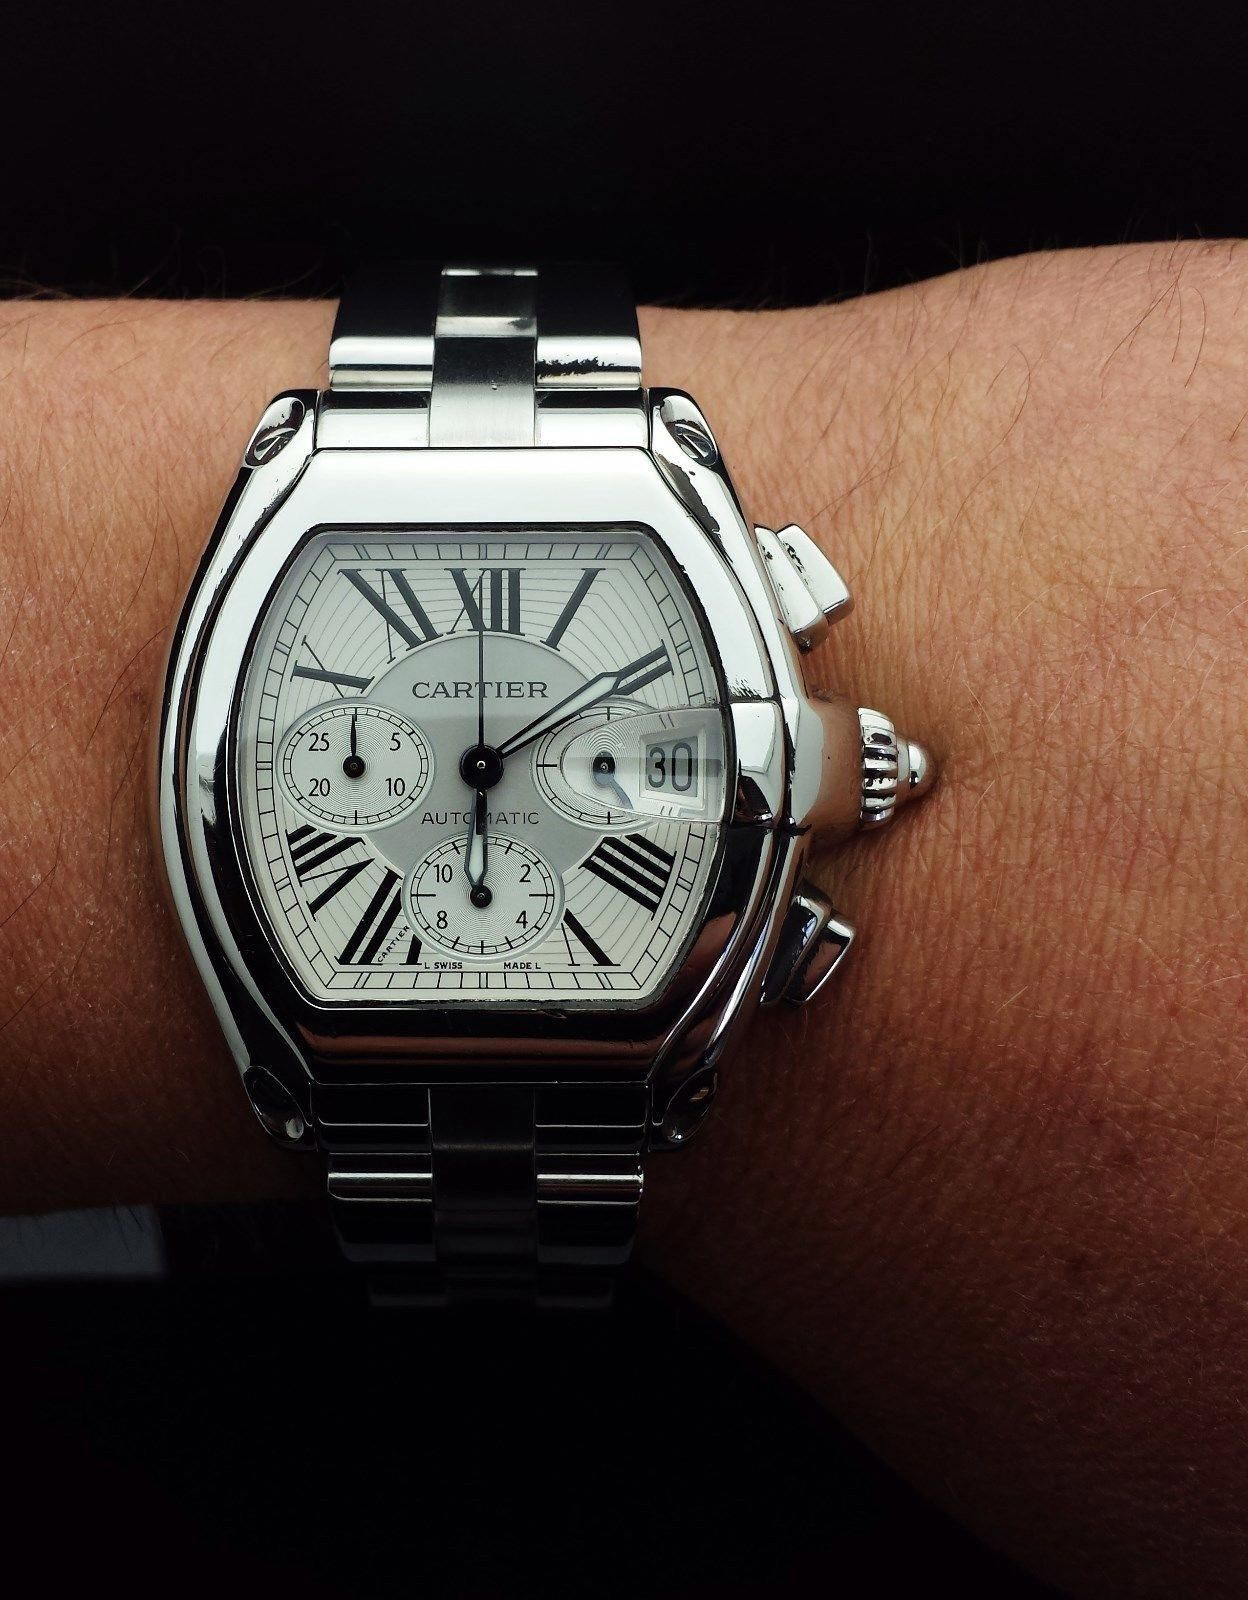 Authentic Cartier Roadster Wrist Watch For Men Ebay Cartierwatches Cartier Roadster Watches For Men Cartier Watches Mens